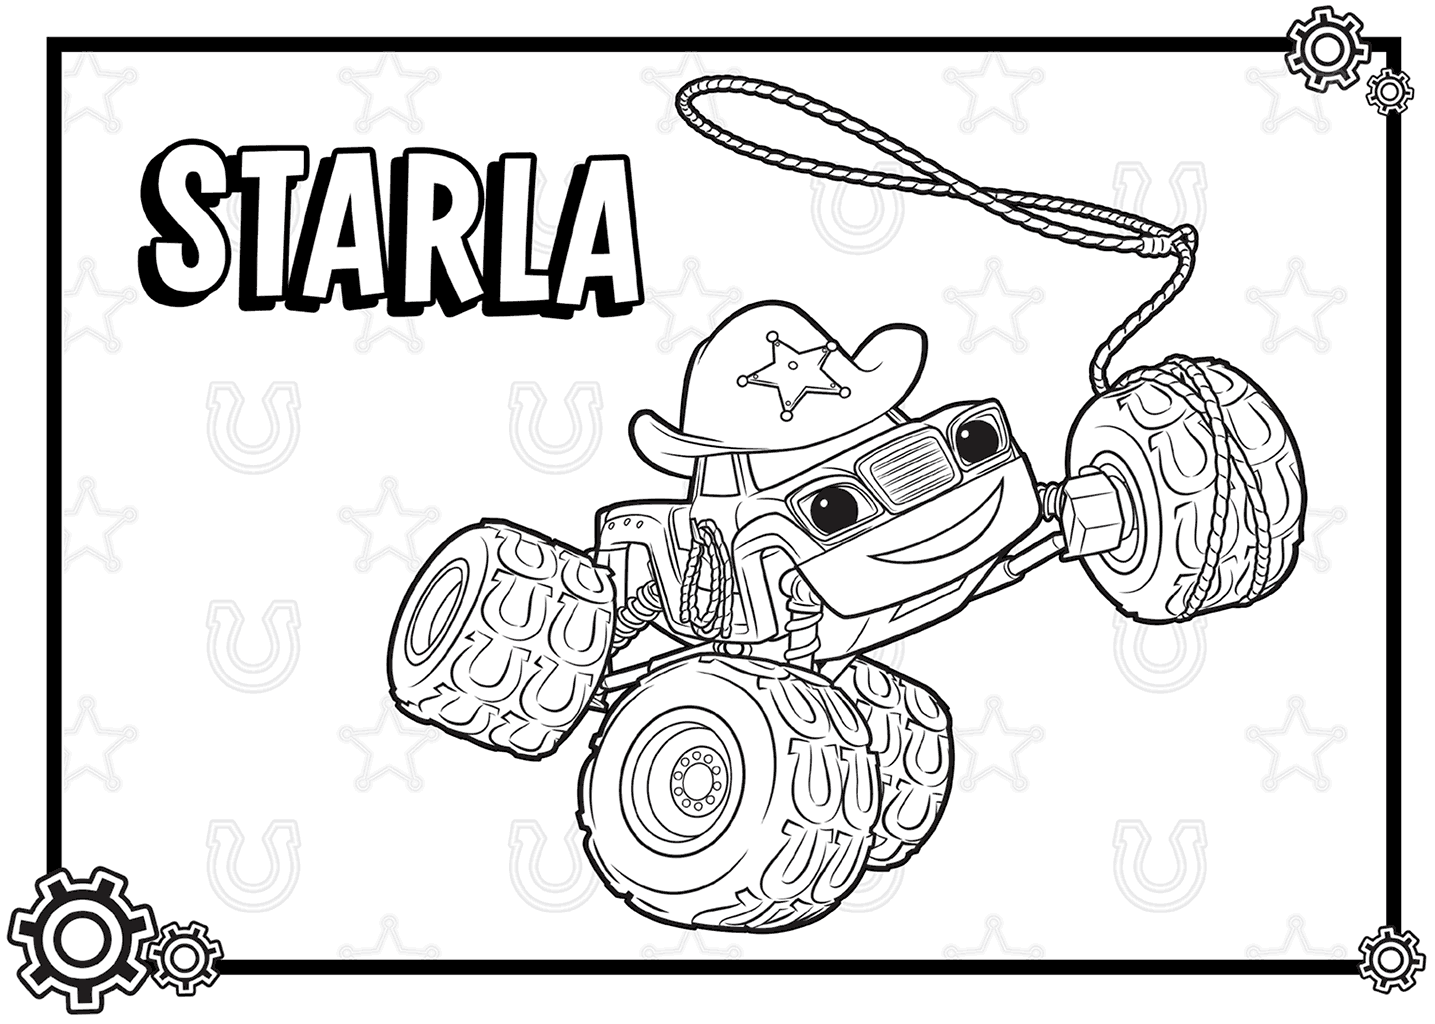 Blaze and the Monster Machines Coloring Pages in 2020 ...